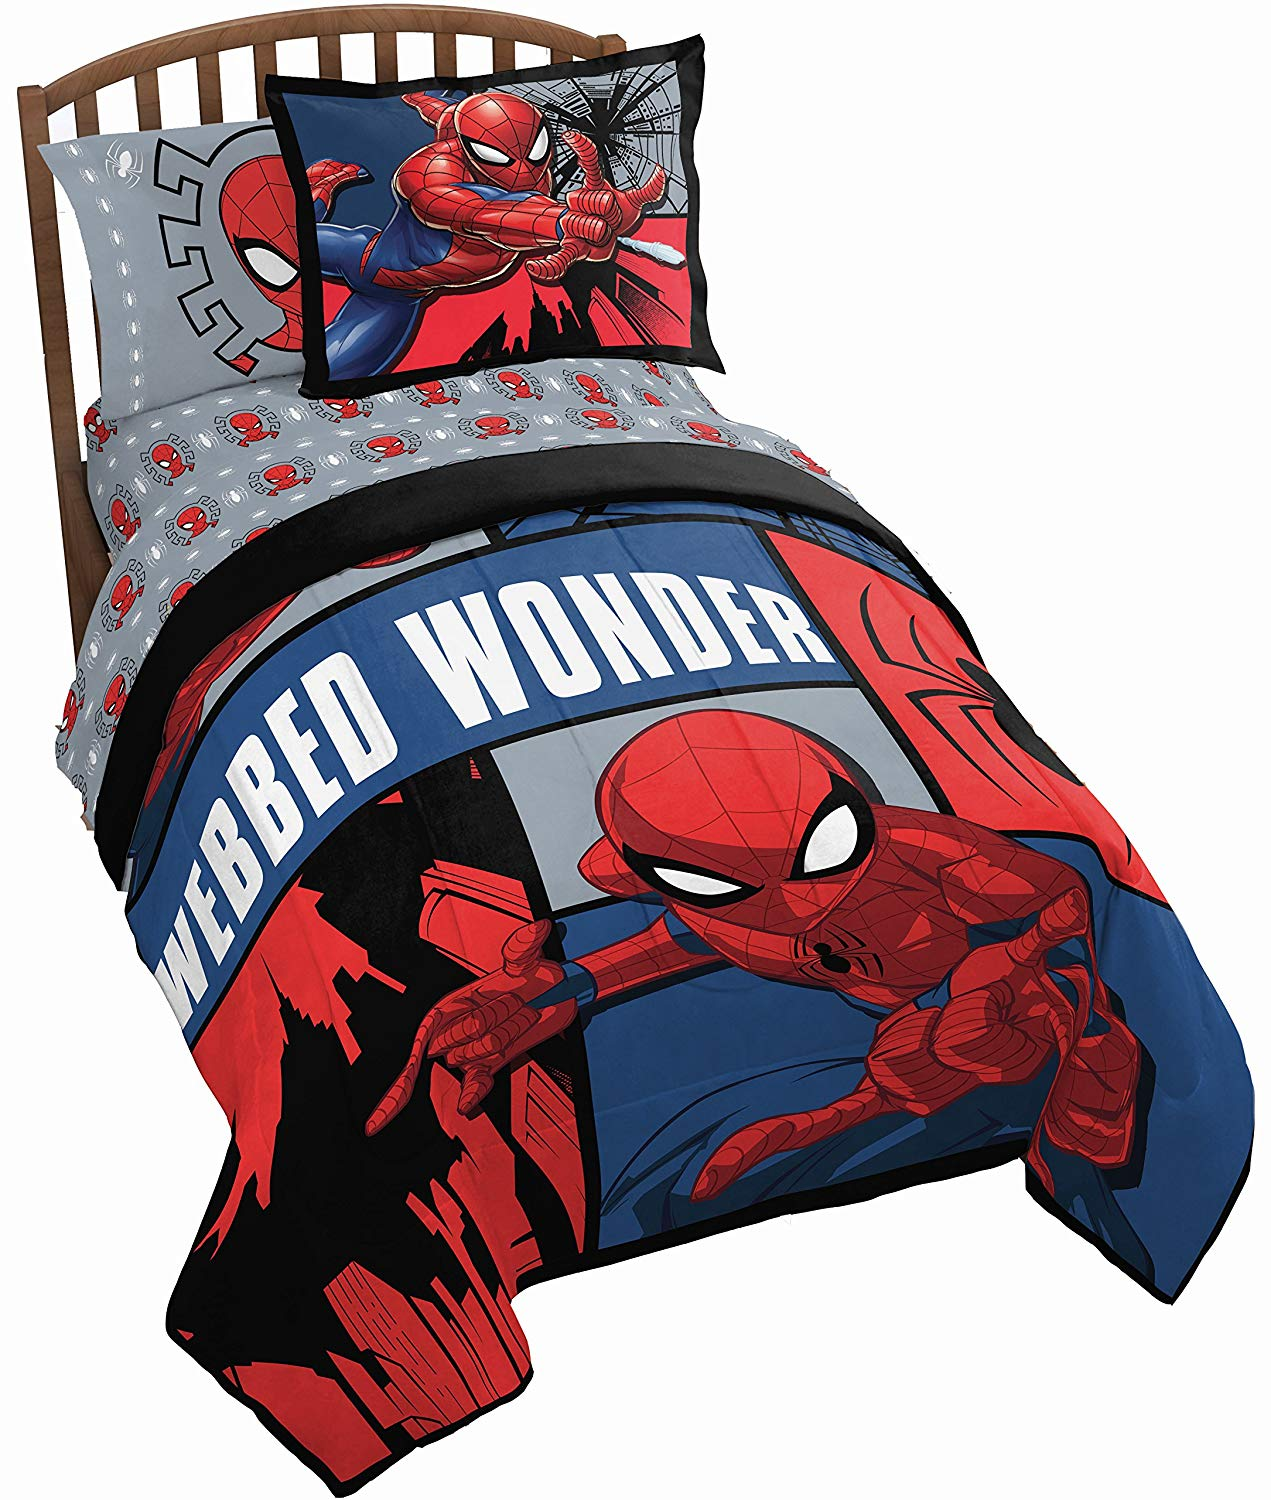 Buy Marvel Spiderman 4 Piece Complete Twin Bed In A Bag